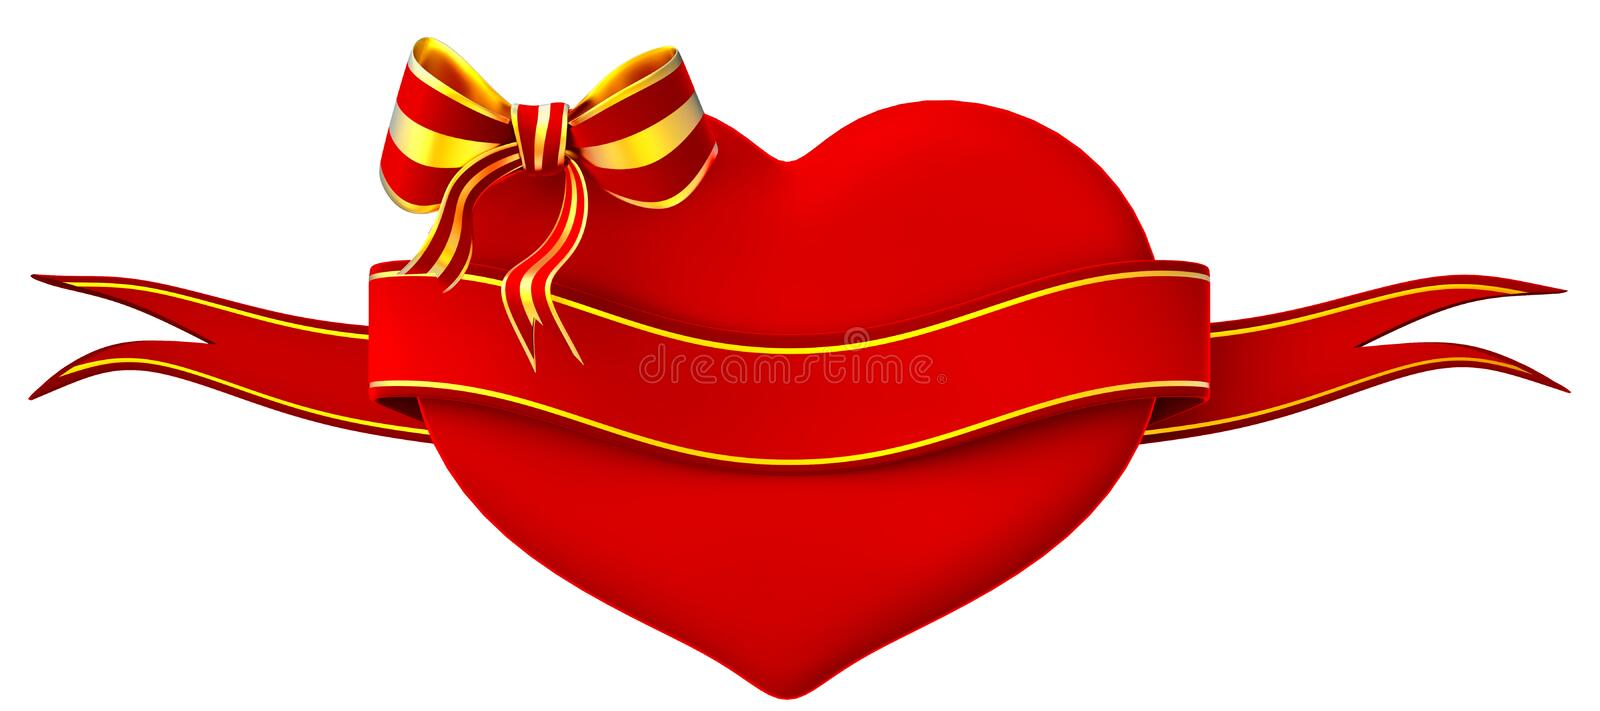 3D Heart With Bow And Ribbon Royalty Free Stock Photo